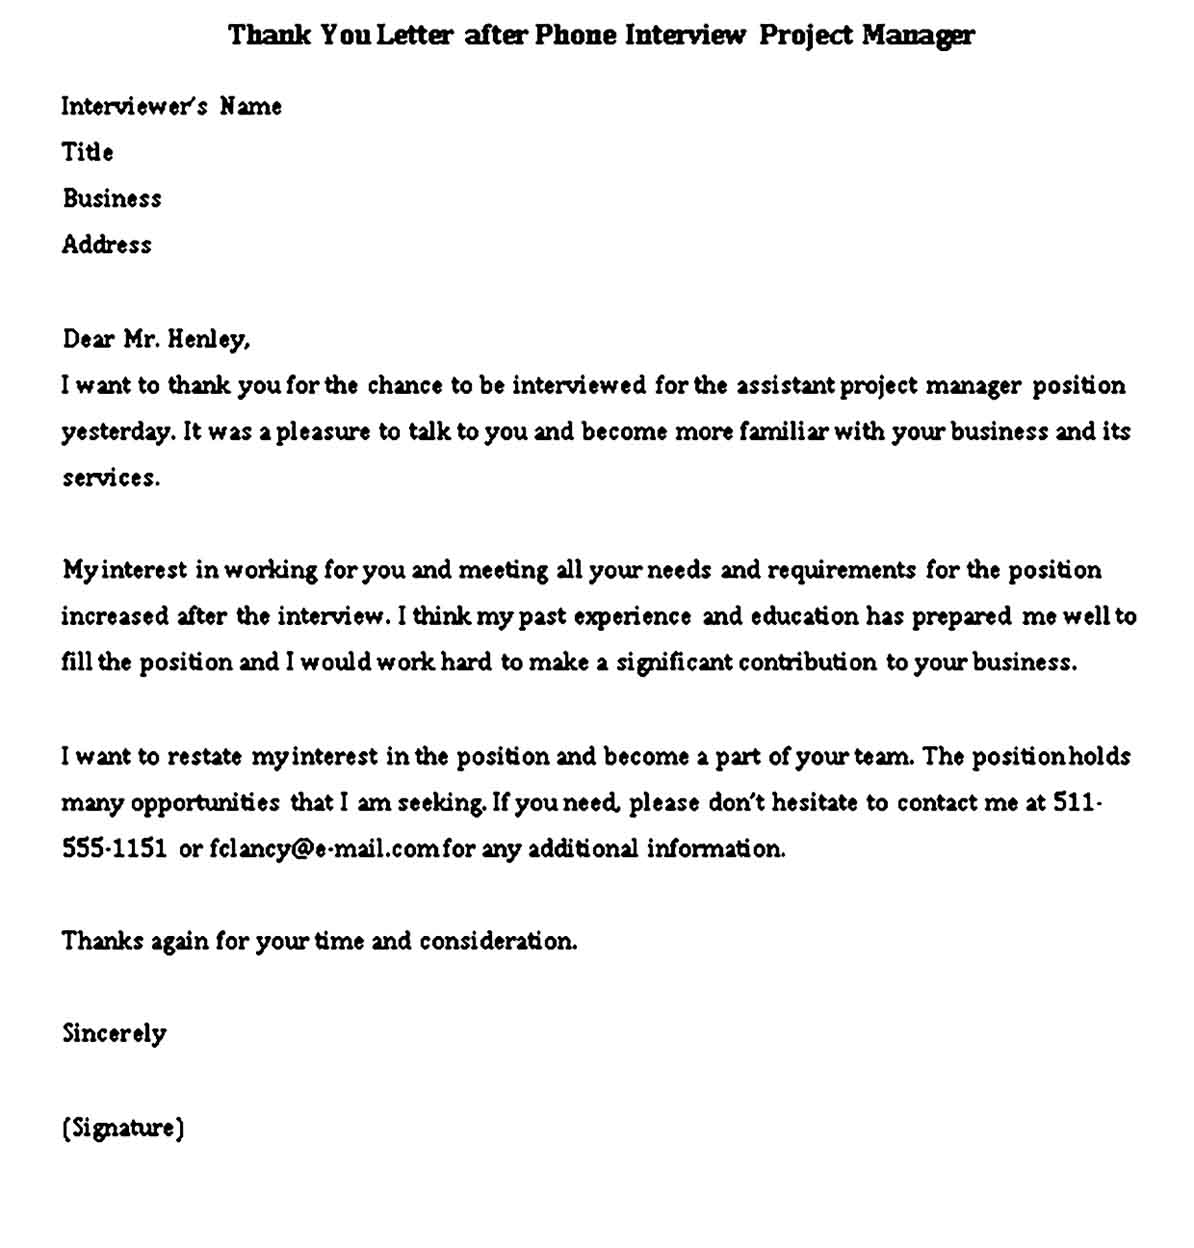 Thank You Letter after Phone Interview Project Manager